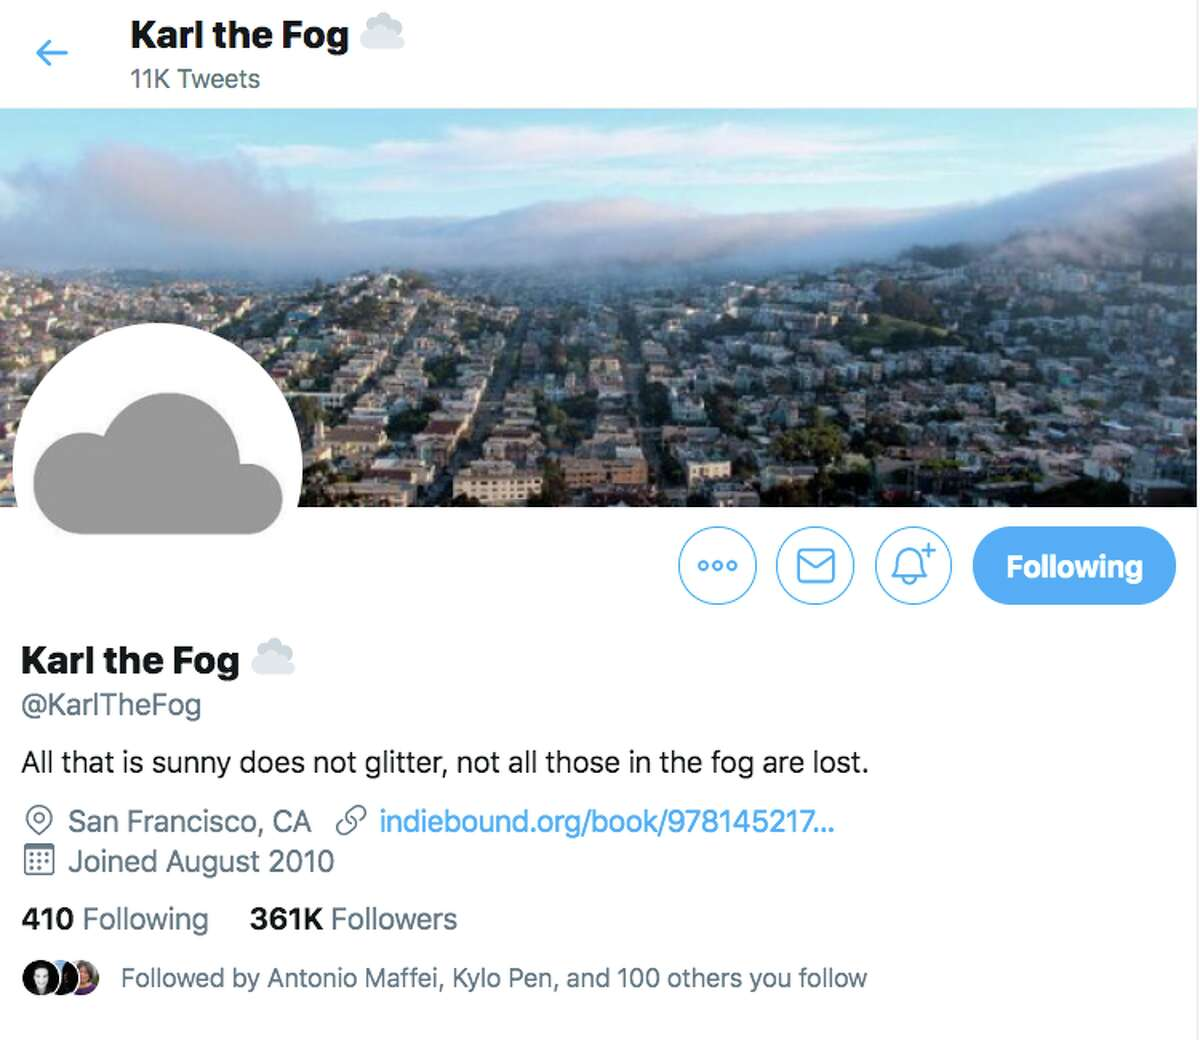 The wildly popular Twitter account @KarletheFog has more than 361,000 followers. The account was first launched in 2010 and the person behind it has kept his identity under wraps.